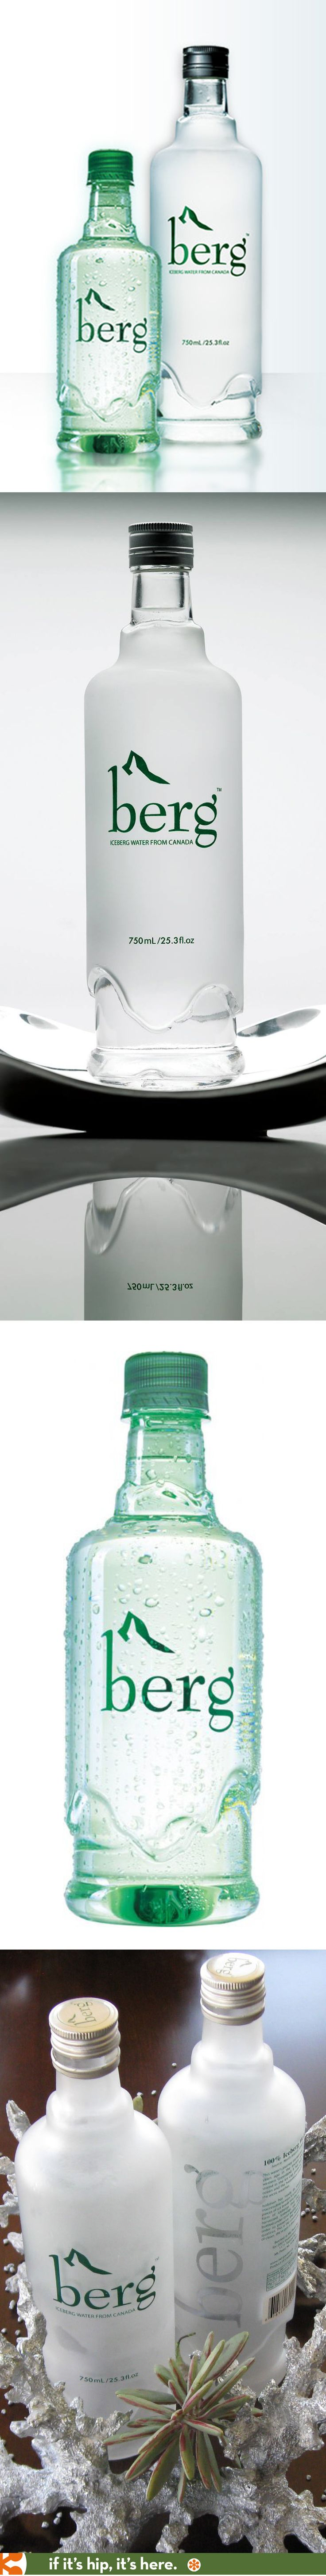 Both the frosted glass and the PET bottle designs for Canada's Berg Water are beautiful.